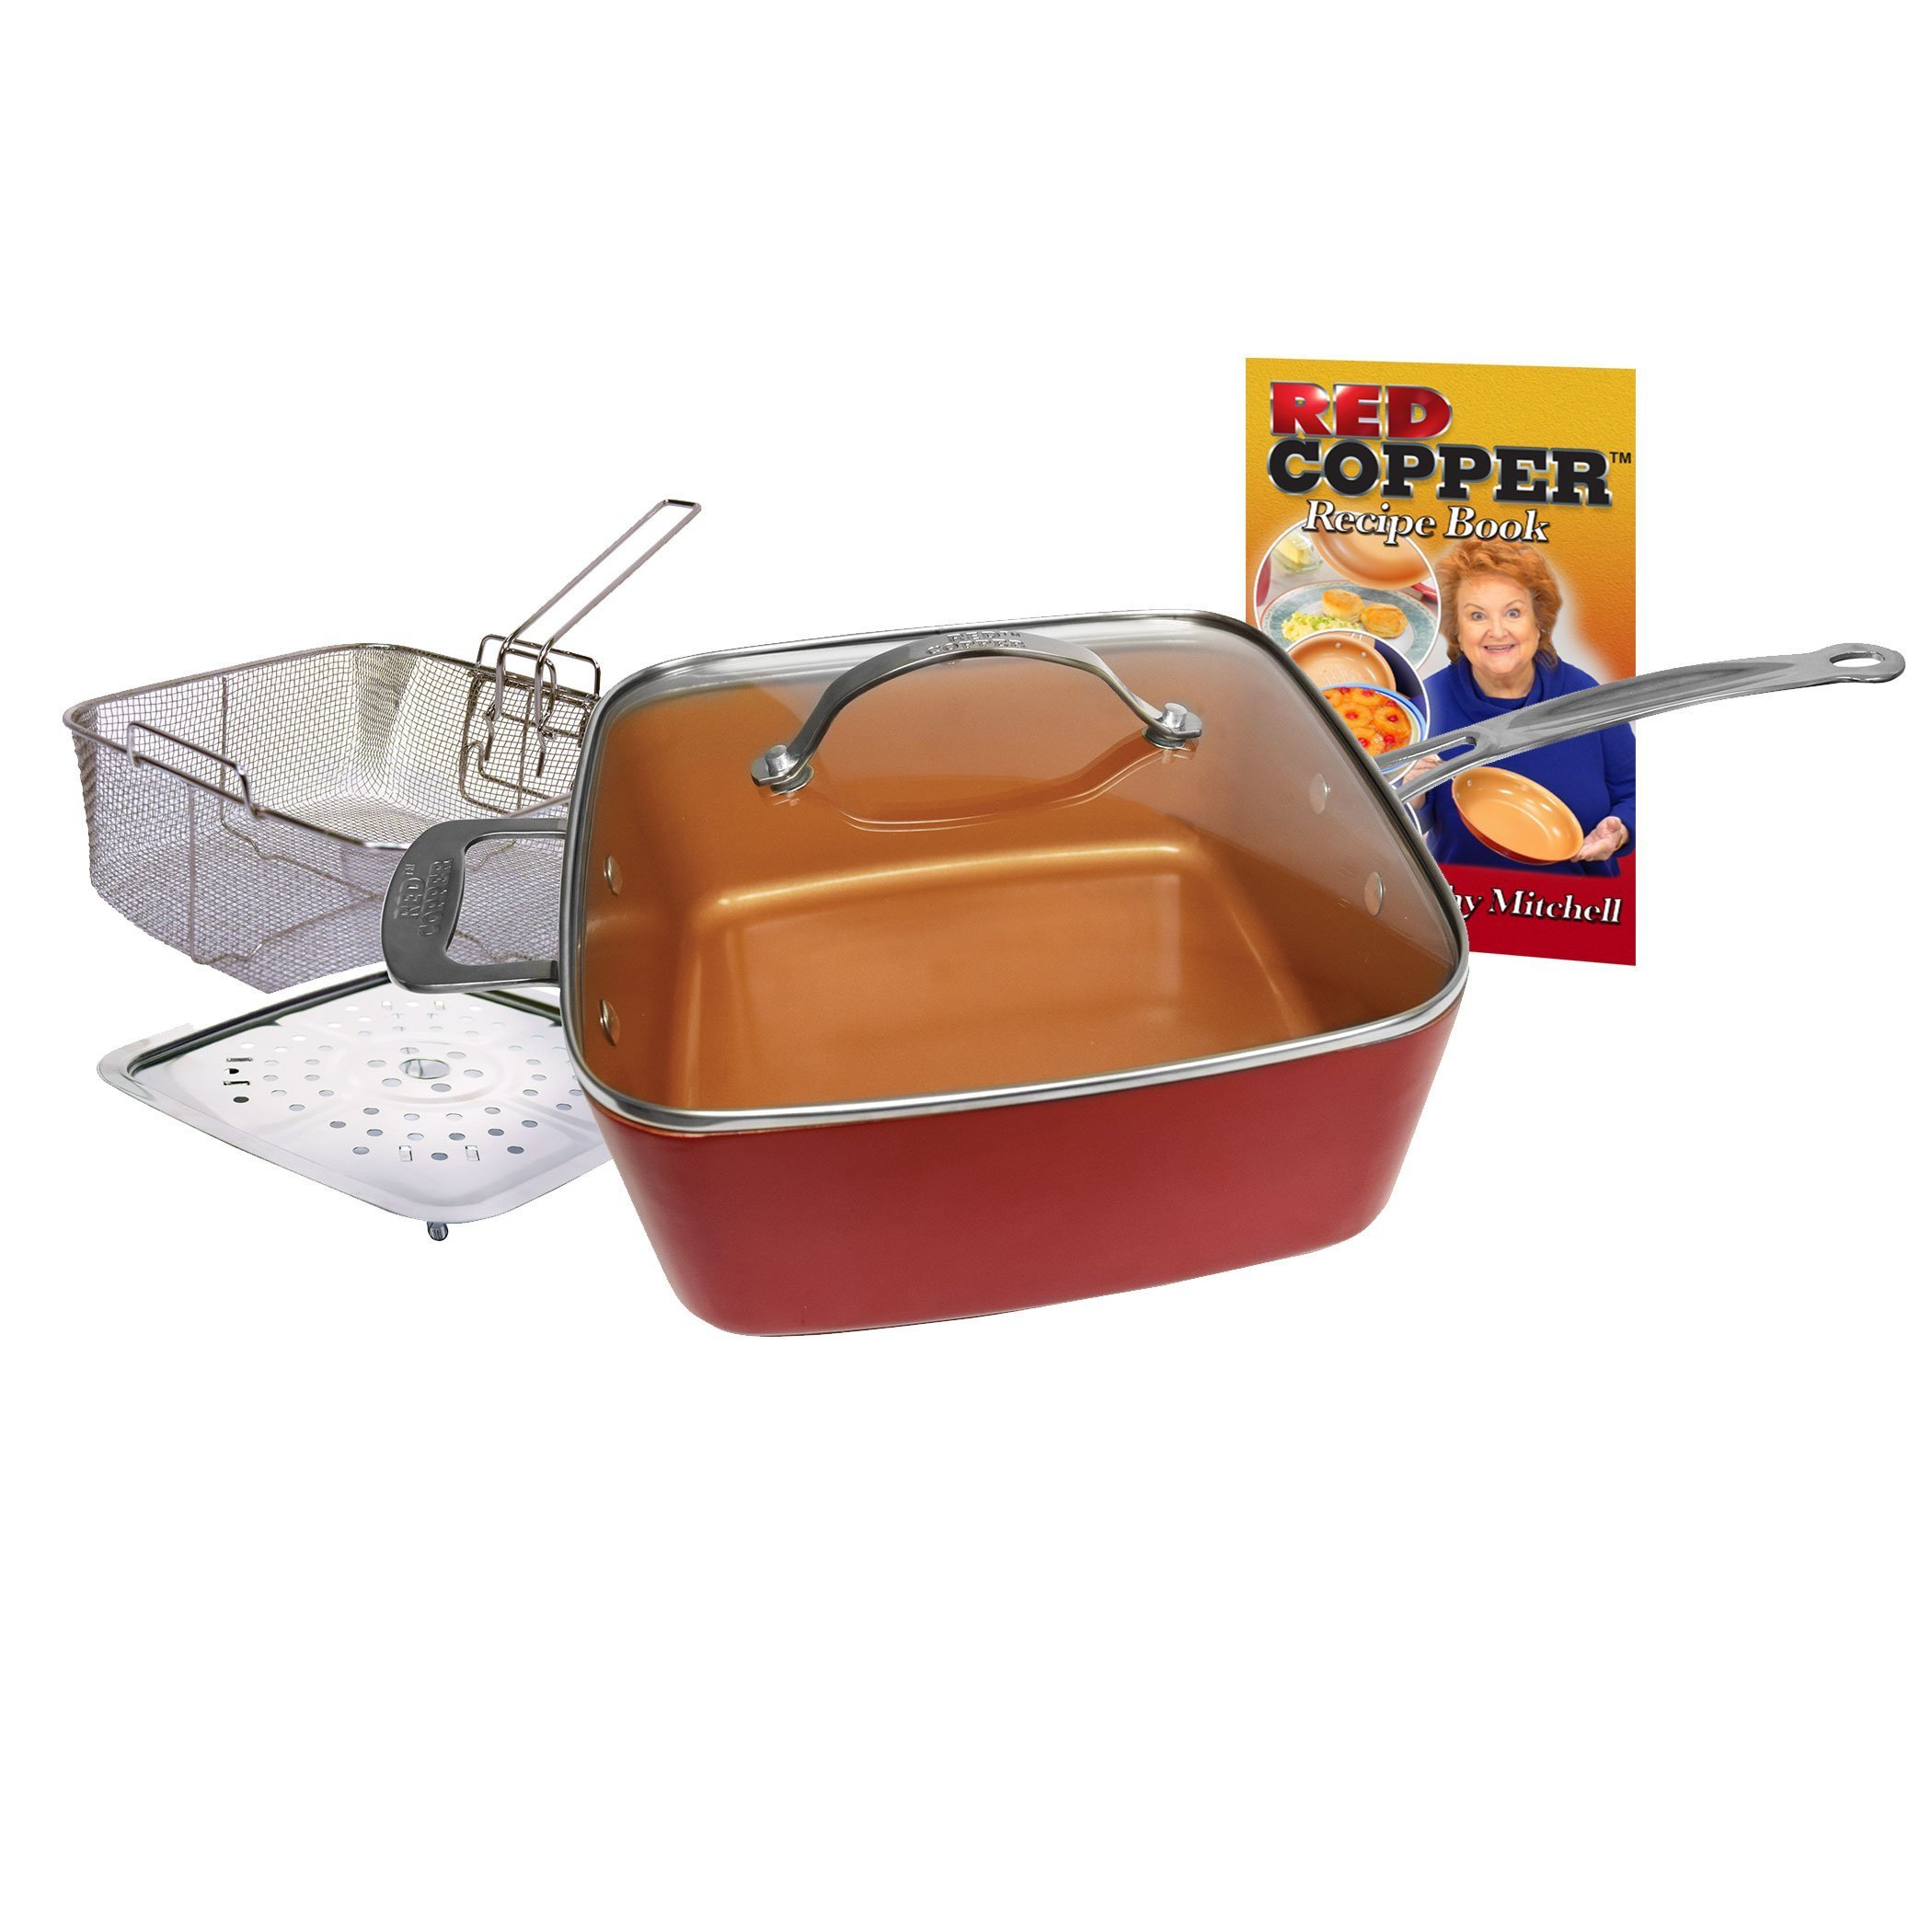 Red Copper Ceramic Cookware